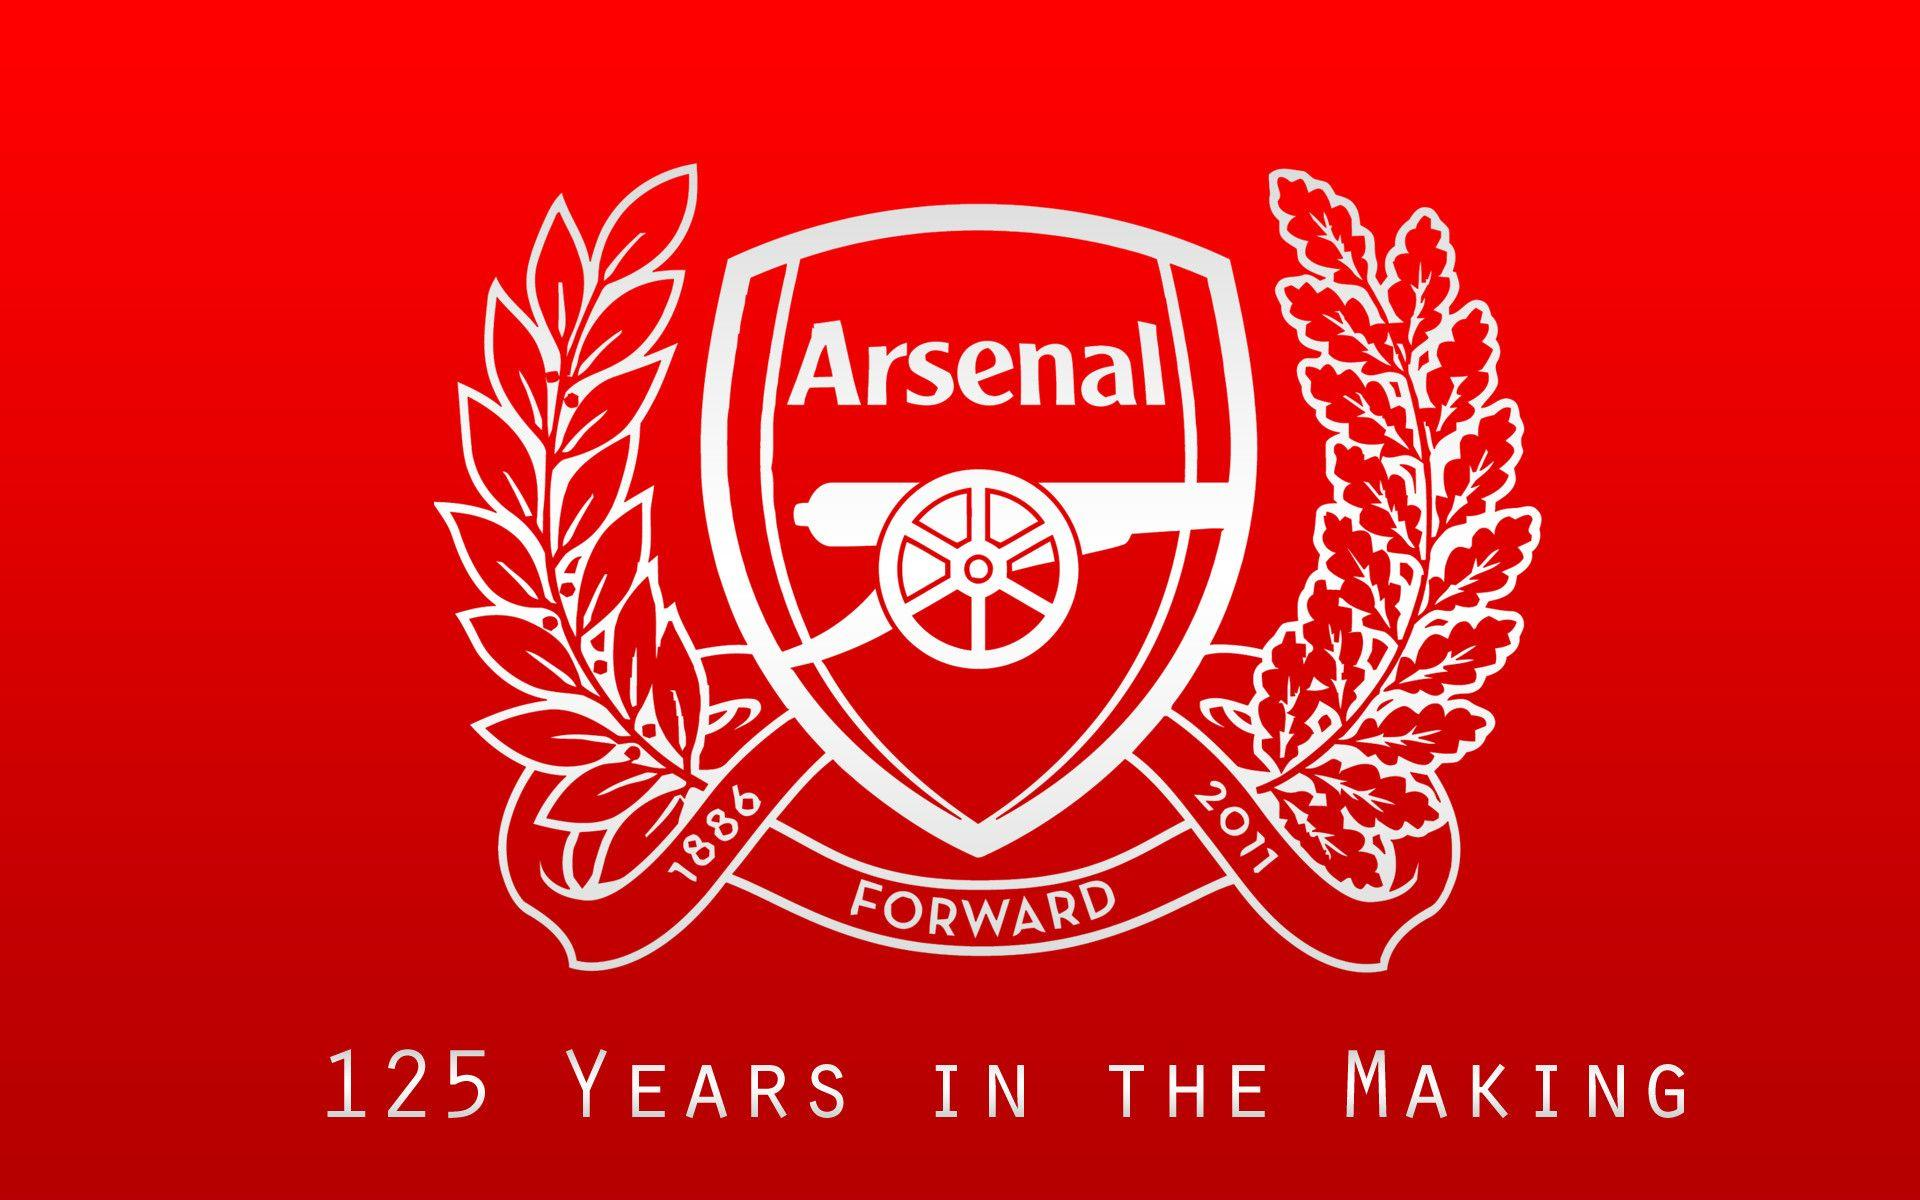 Arsenal Logo Wallpapers - Full HD wallpaper search